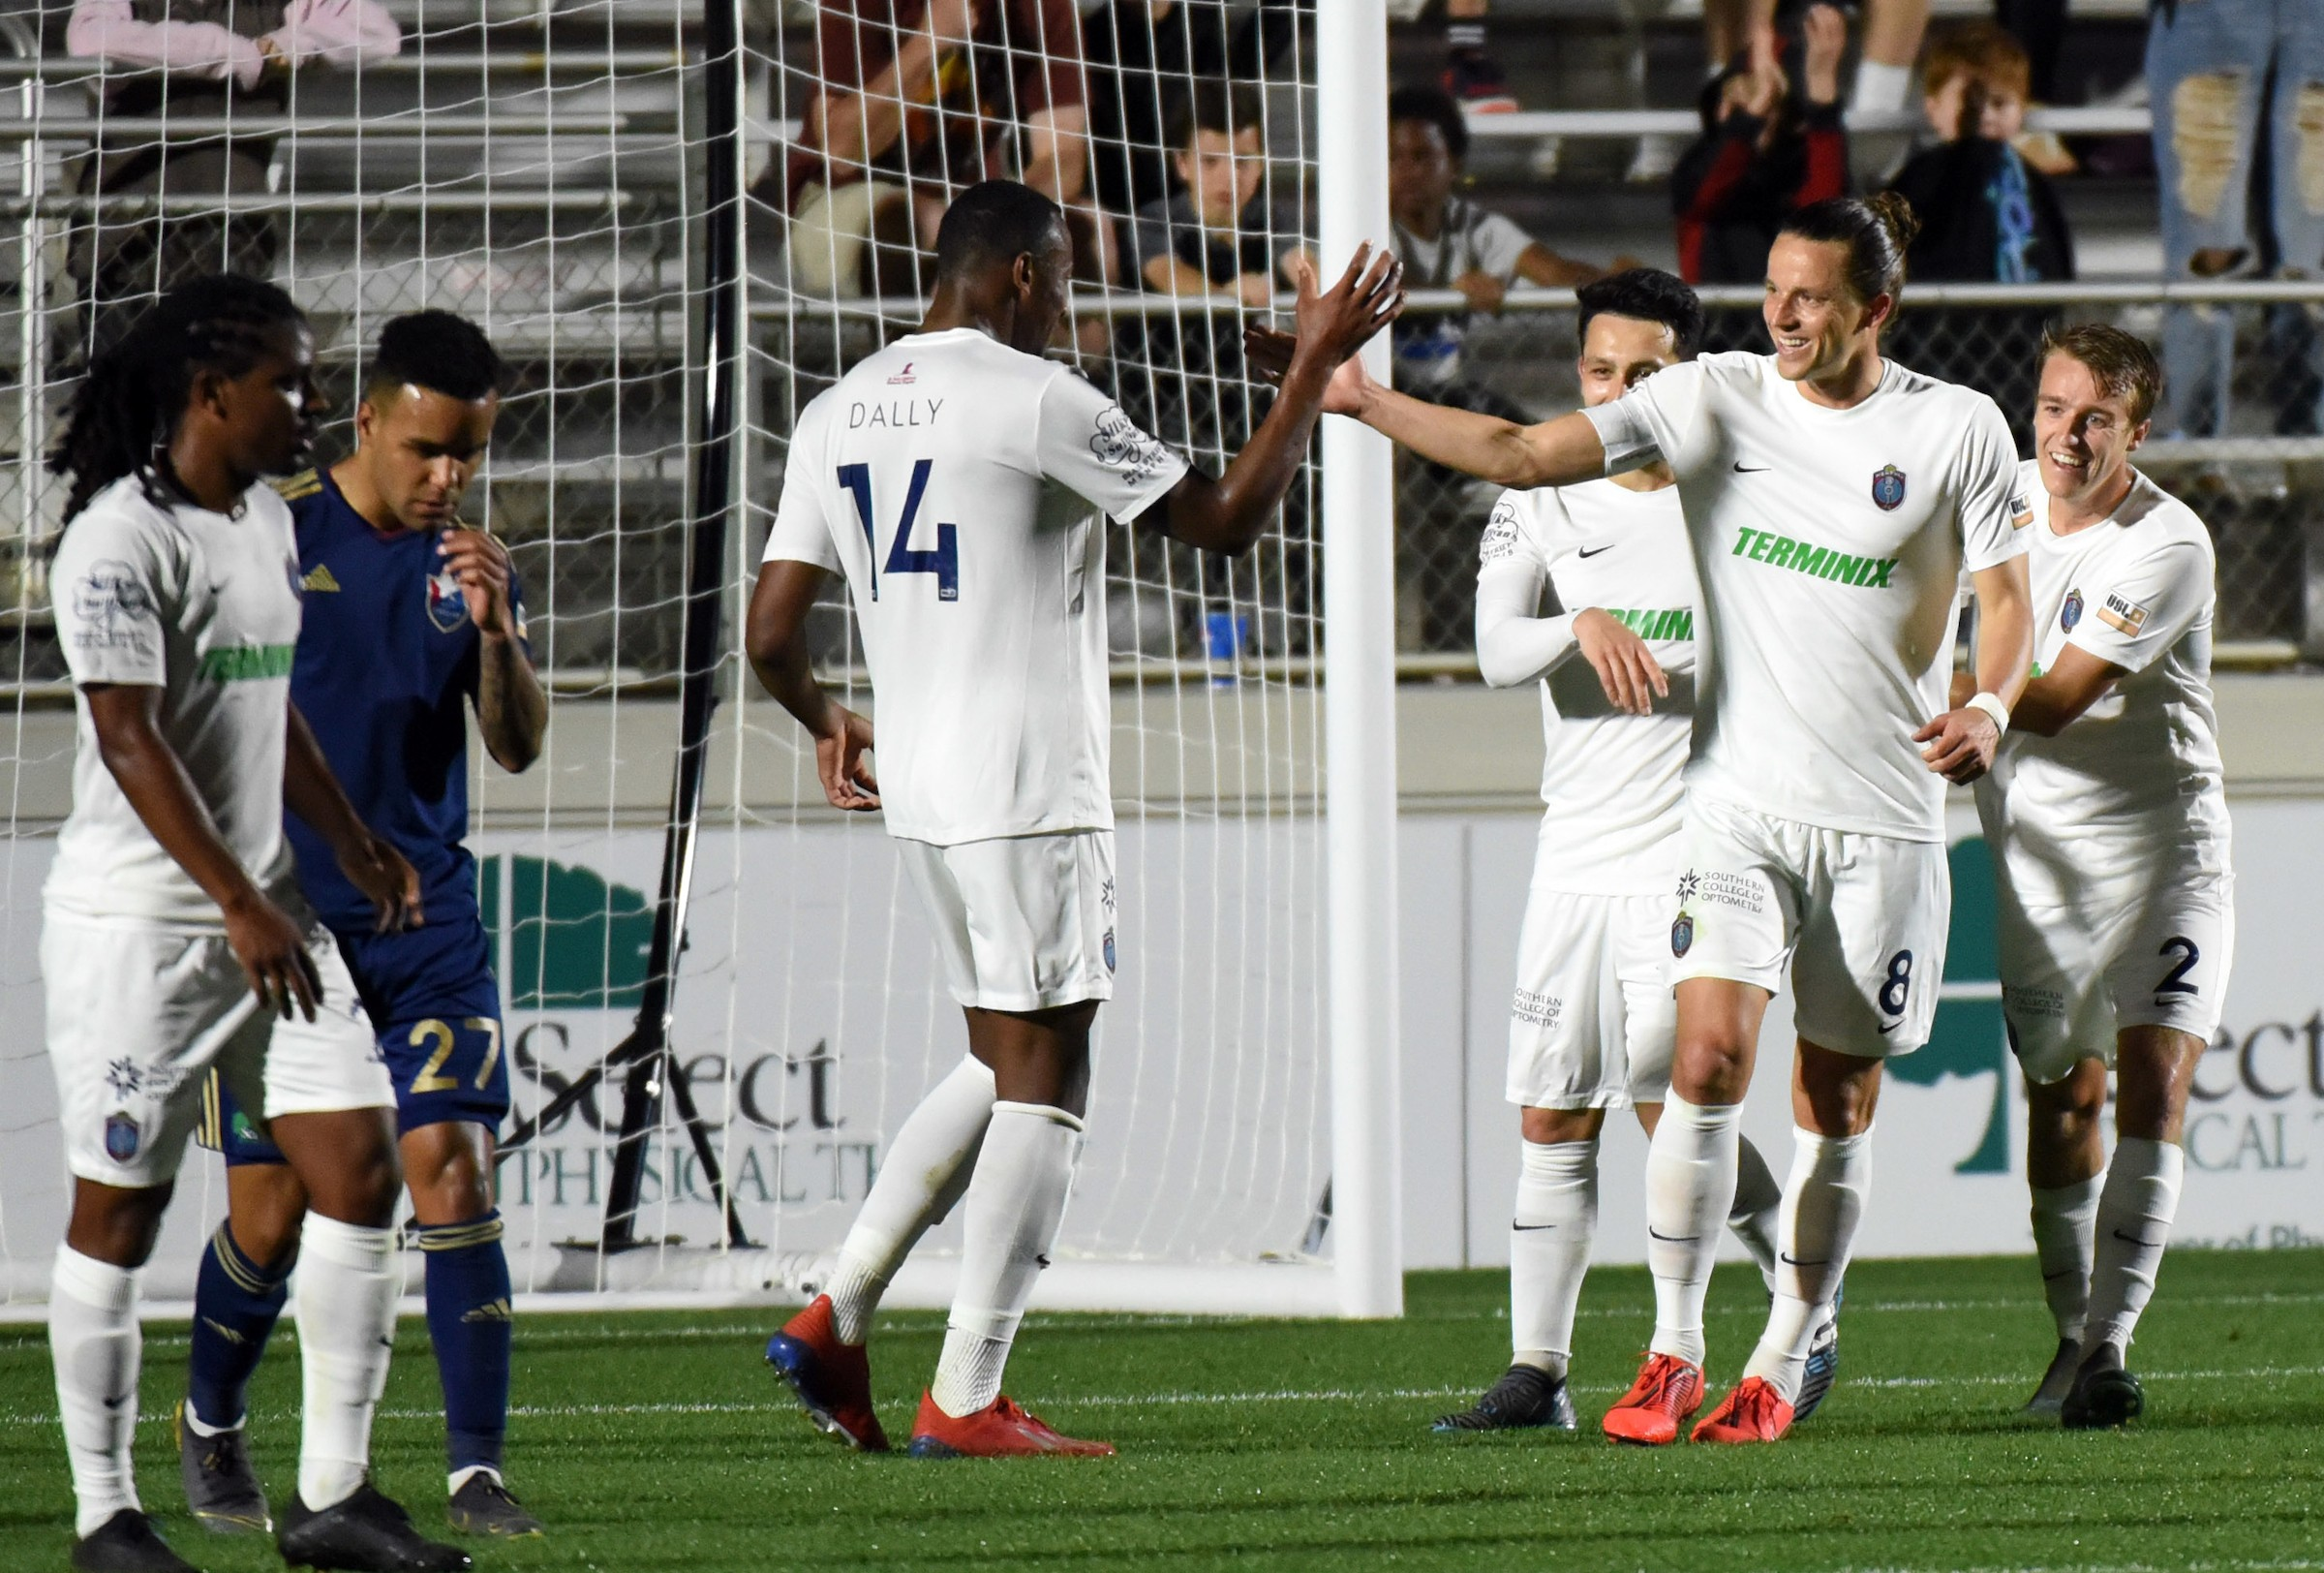 901SP Ep. 38 - A Partial Review of NCFC Away